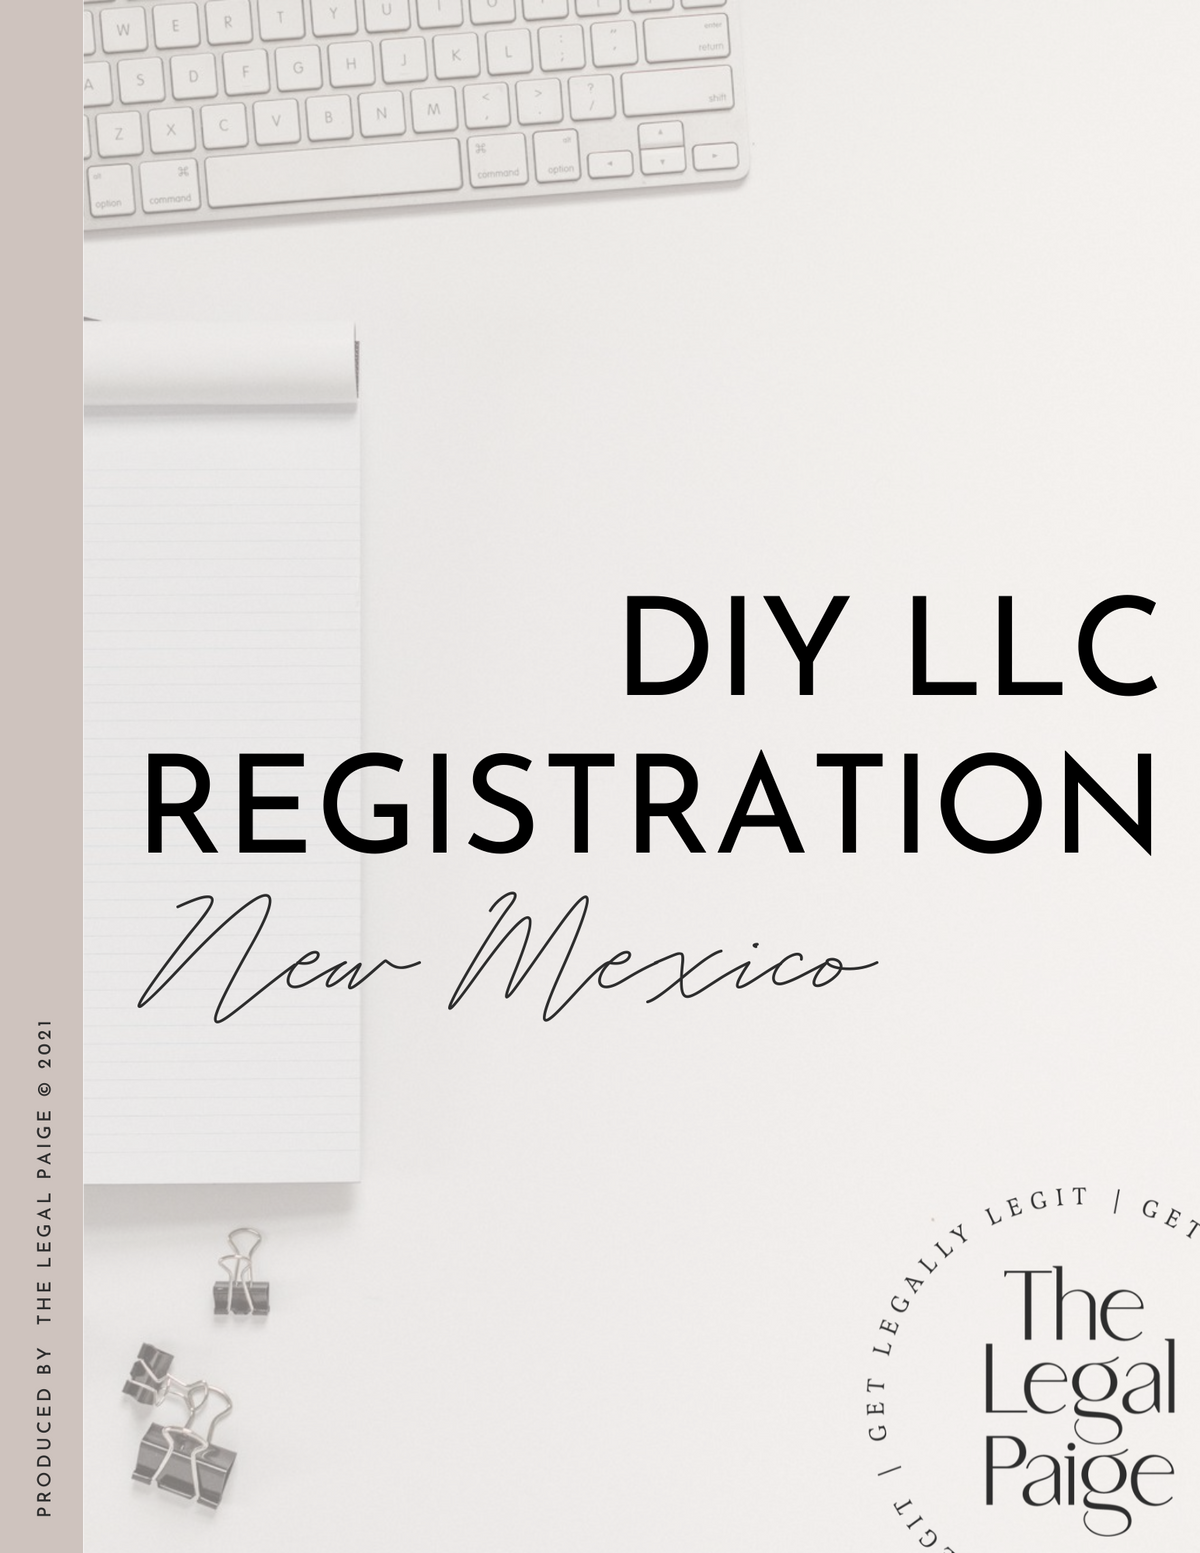 DIY LLC Registration - New Mexico